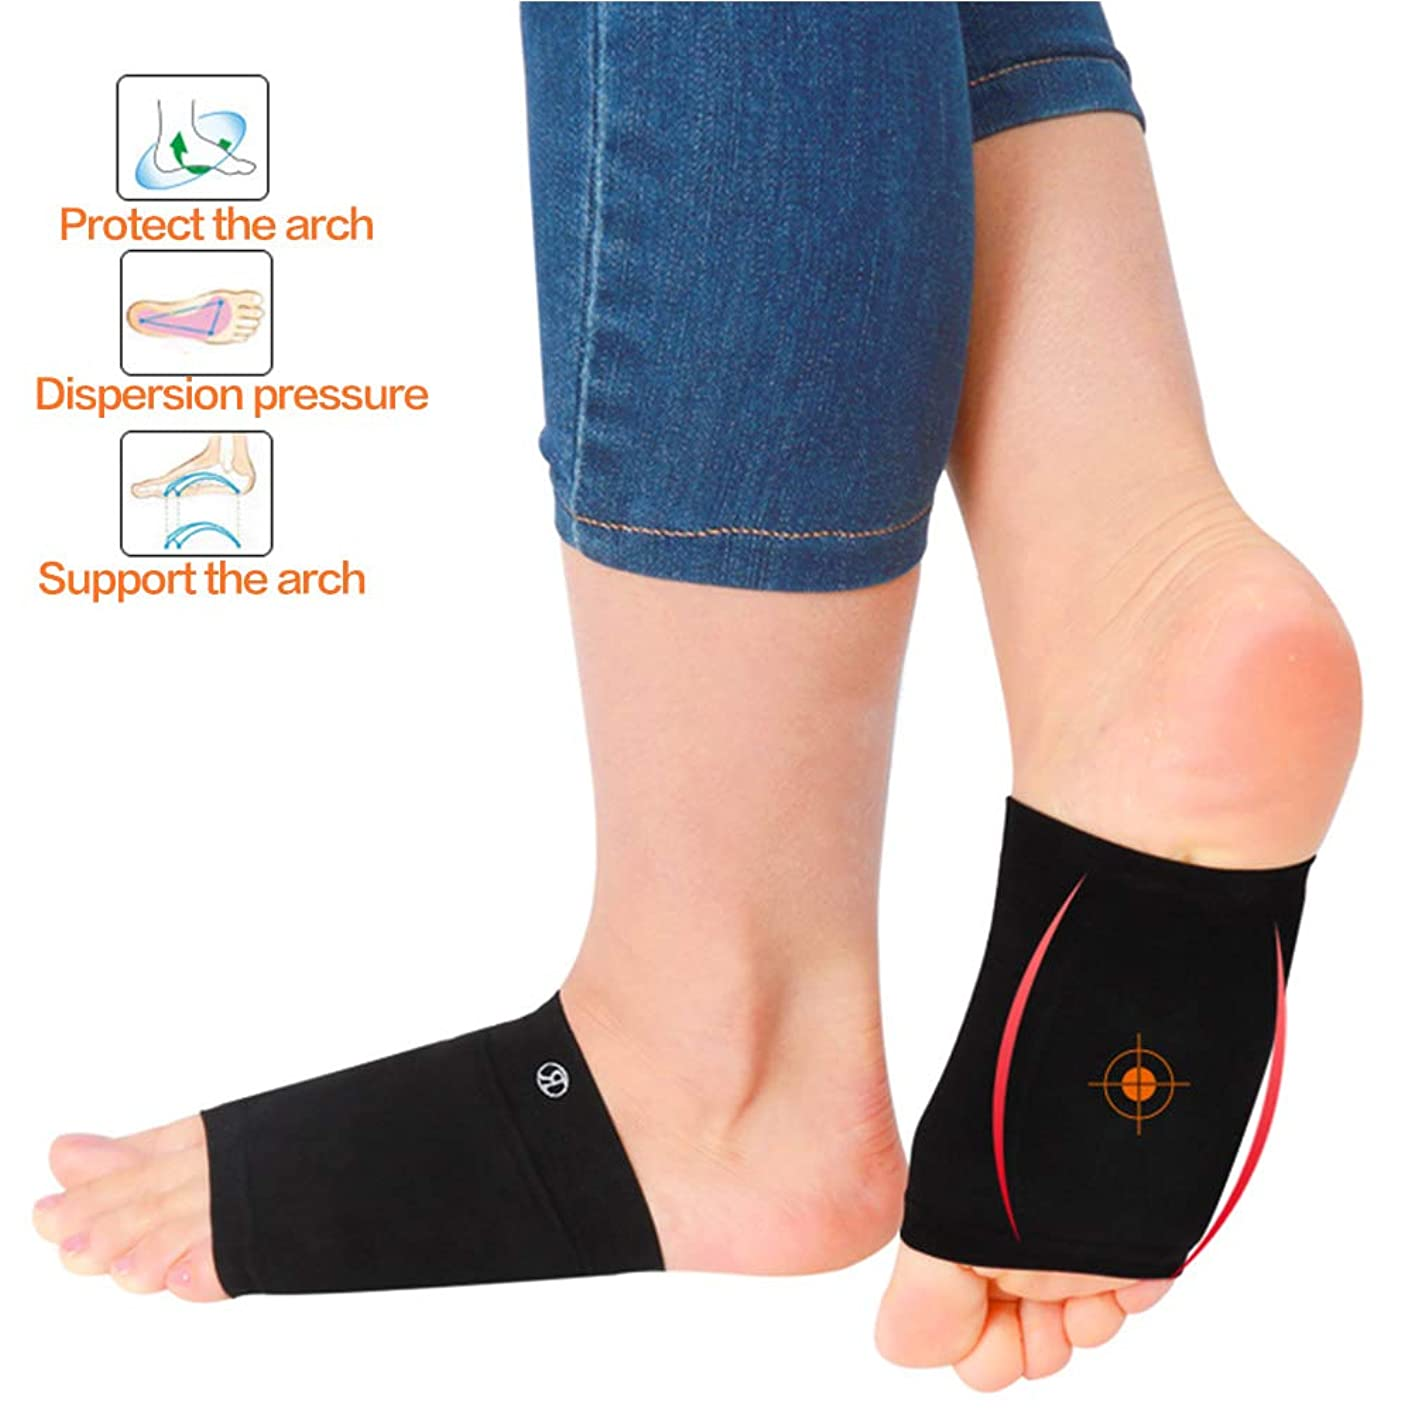 Compression Arch Support Sleeves Sock with Comfort Gel Pad Cushions for Women & Men, Arch Brace for Flat Feet, Sleeves Shoe Insert Insole, Best for Plantar Fasciitis & Flat Foot,Pain Relief(Black)